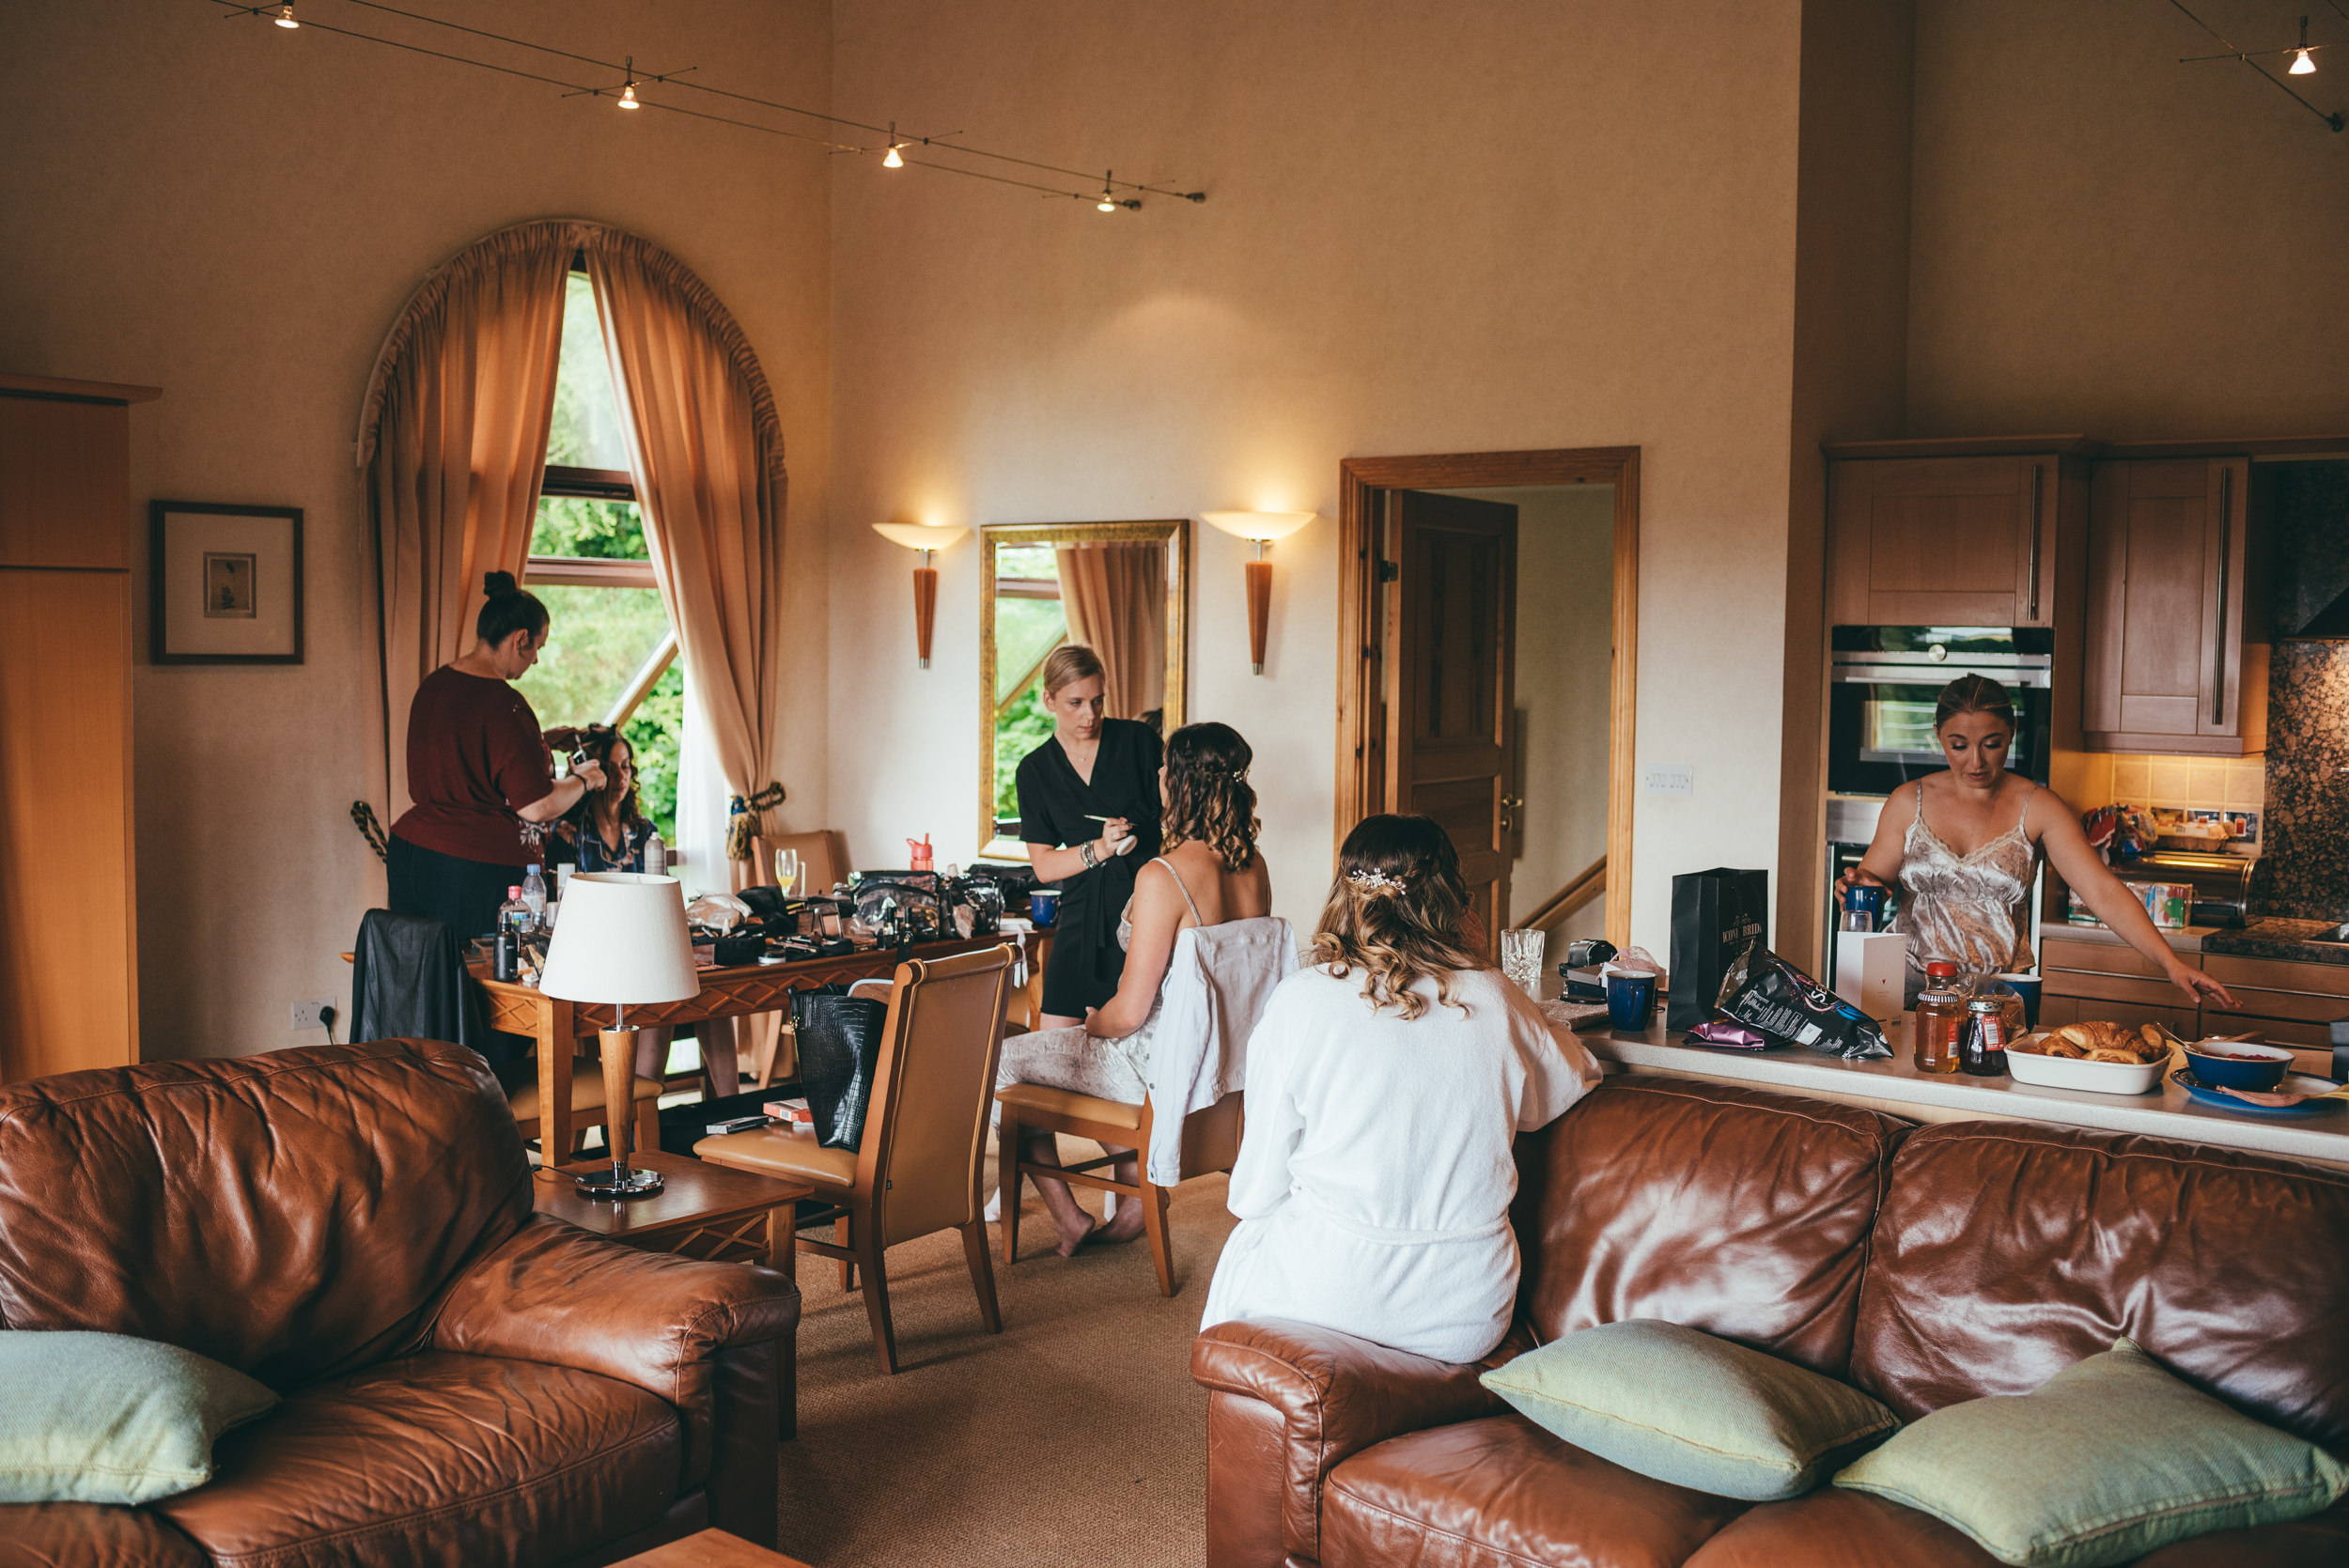 Bridal preparations at Belton Woods hotel